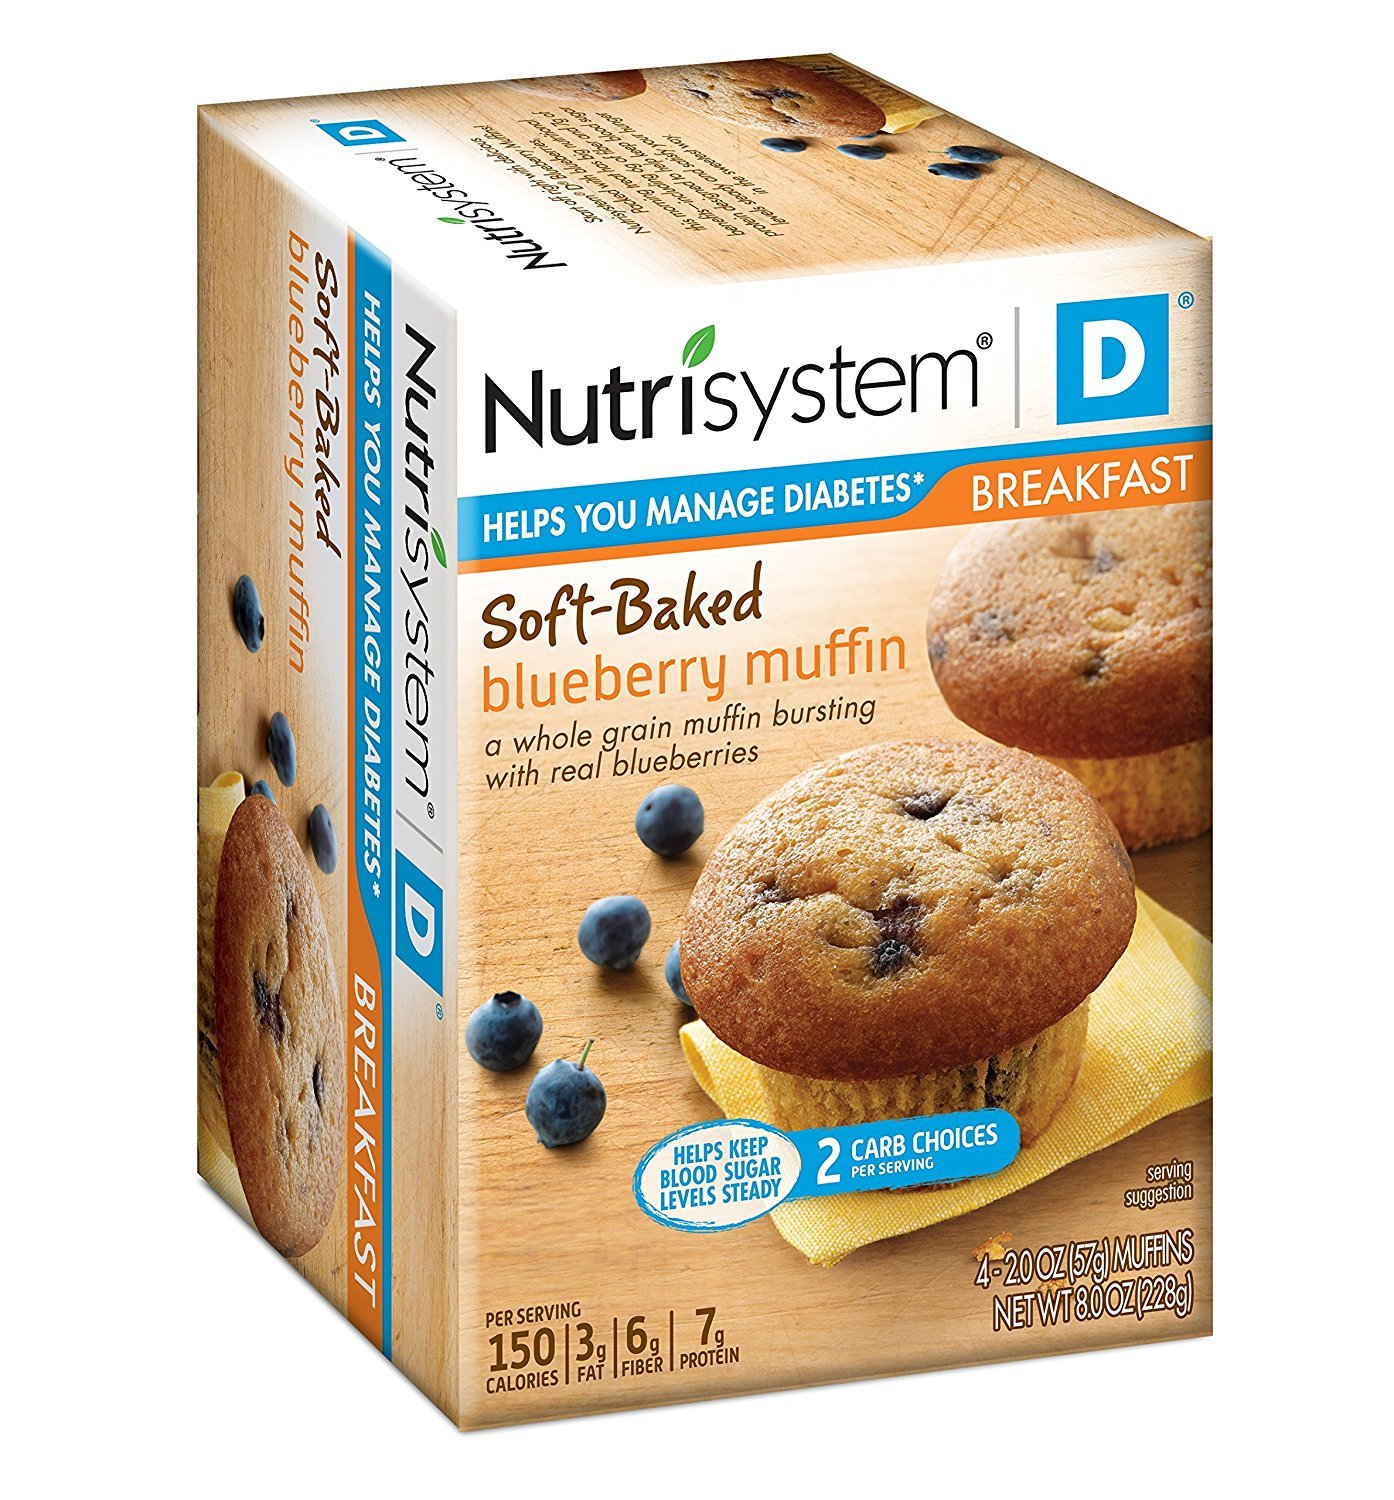 Nutrisystem ® D® Blueberry Muffin, 8 count by Nutrisystem Everyday, LLC (Image #1)